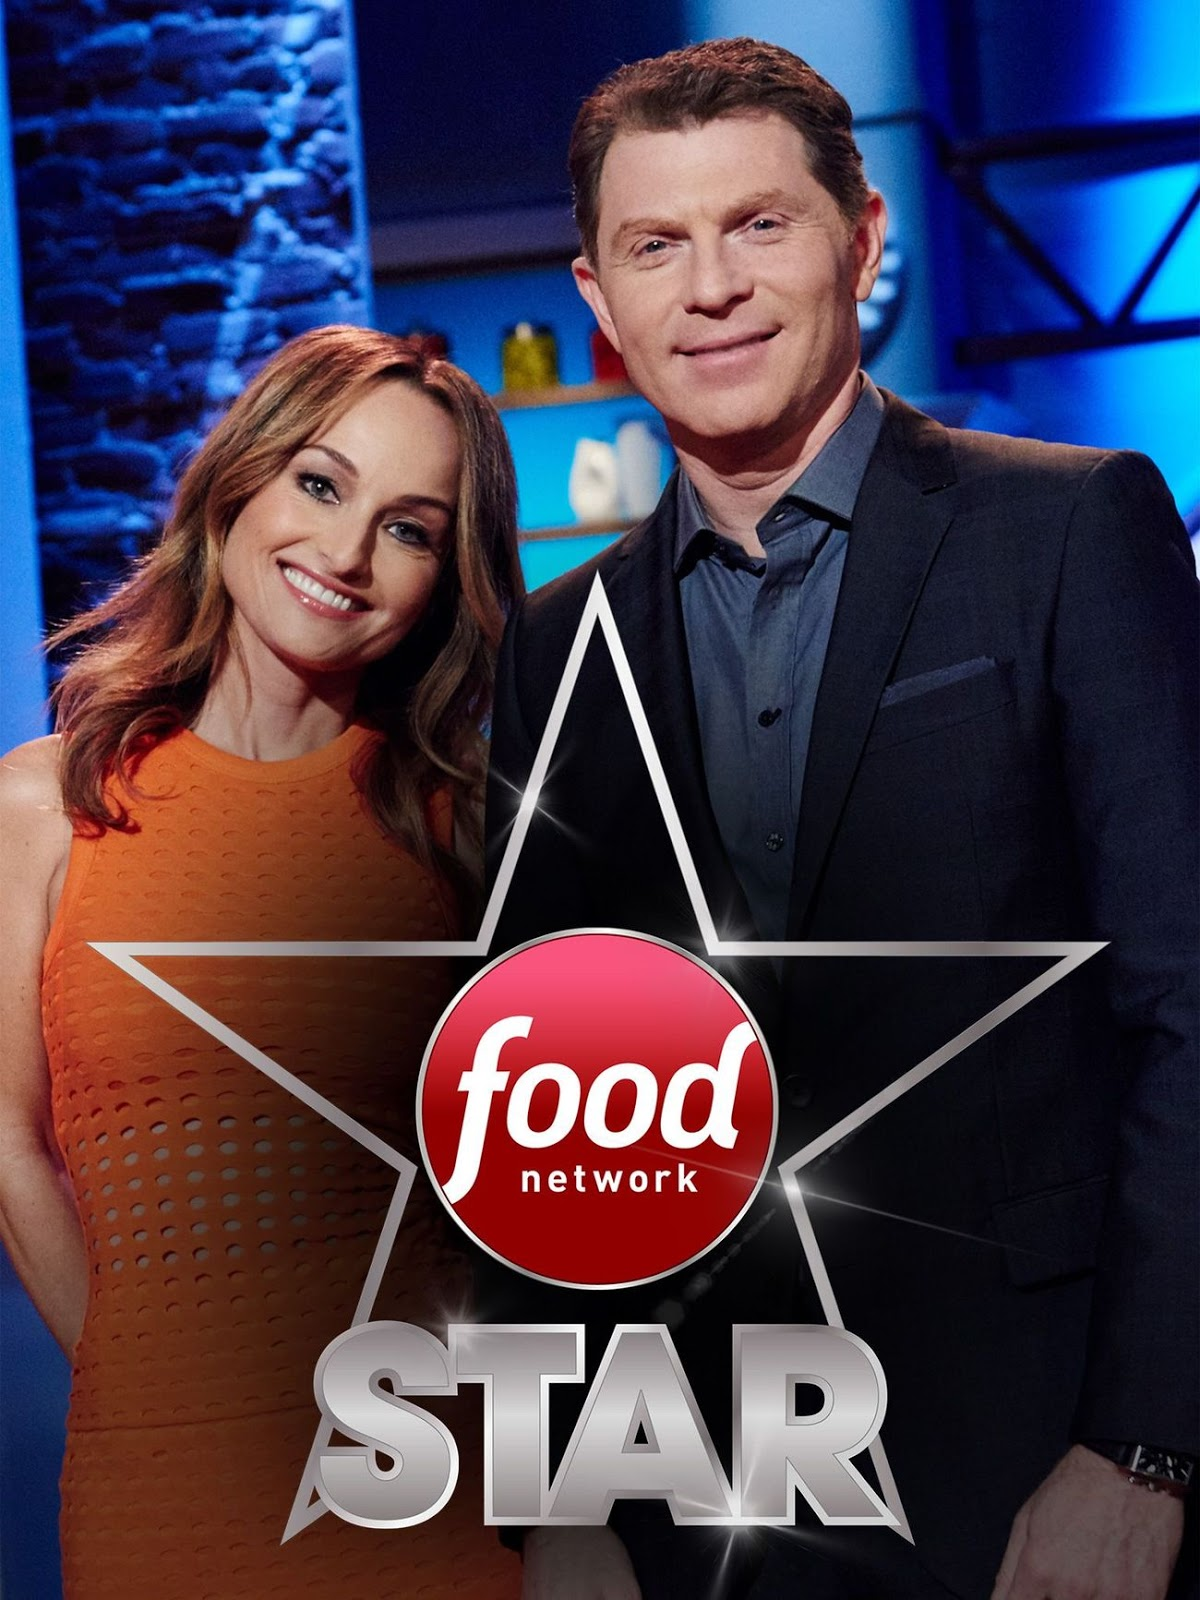 Food network dating show